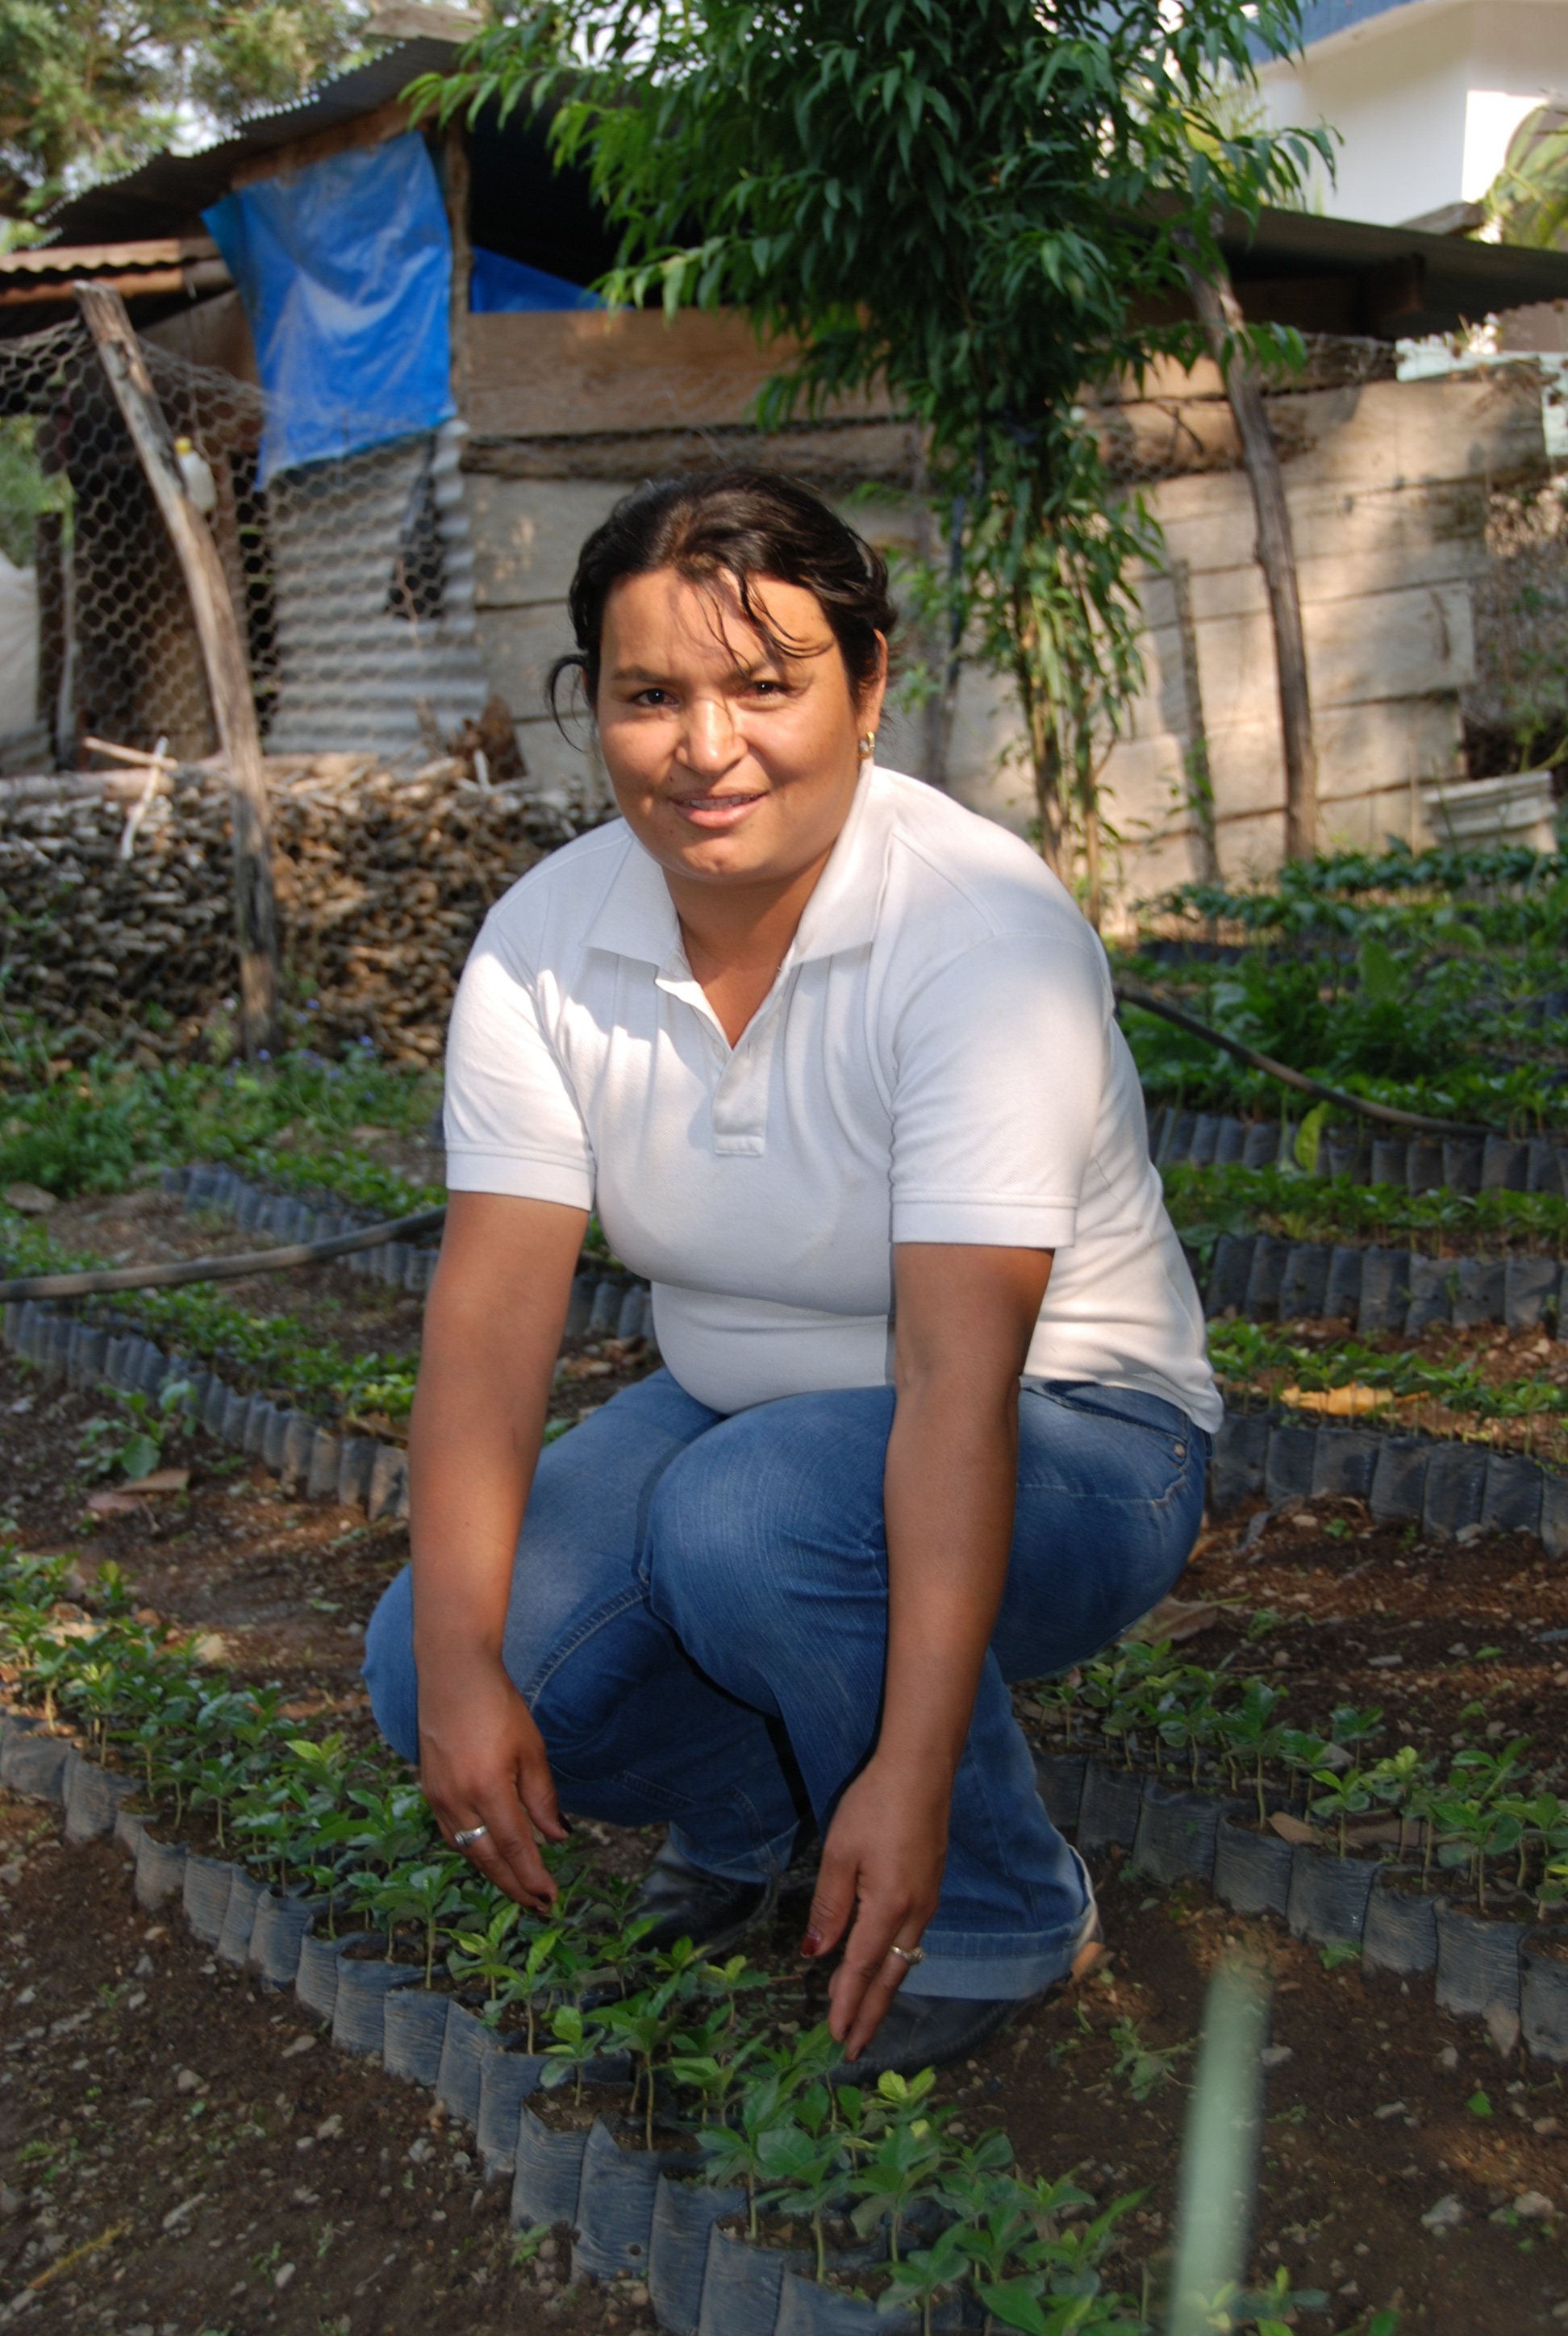 Orfa leads UPC's women's group, here she is pictured with coffee plant seedlings.